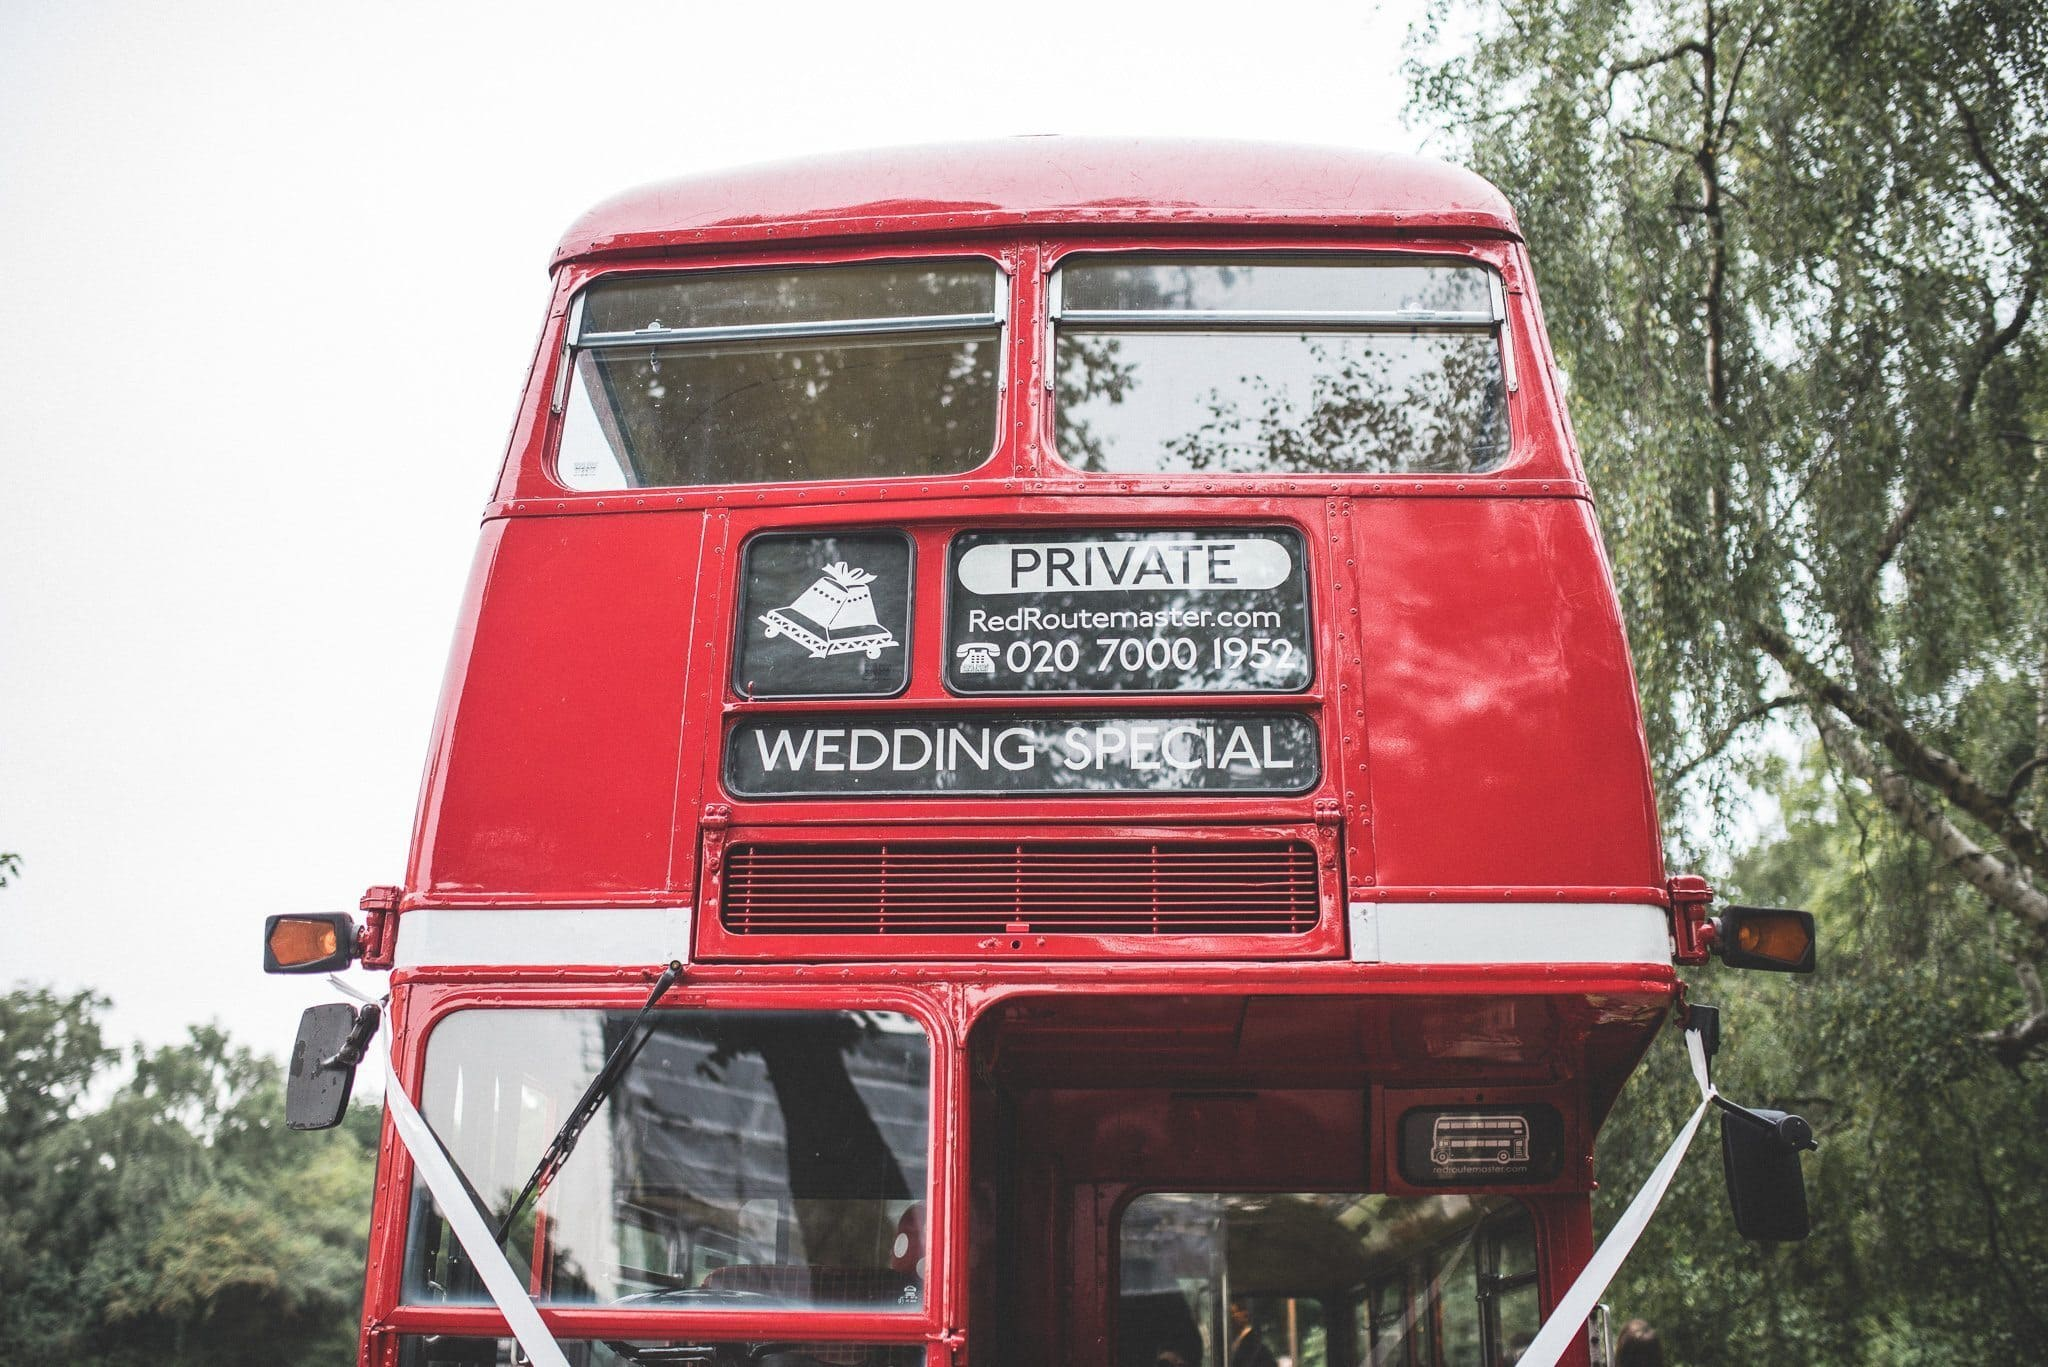 The red routemaster bus that took guests from the ceremony to the reception in central London